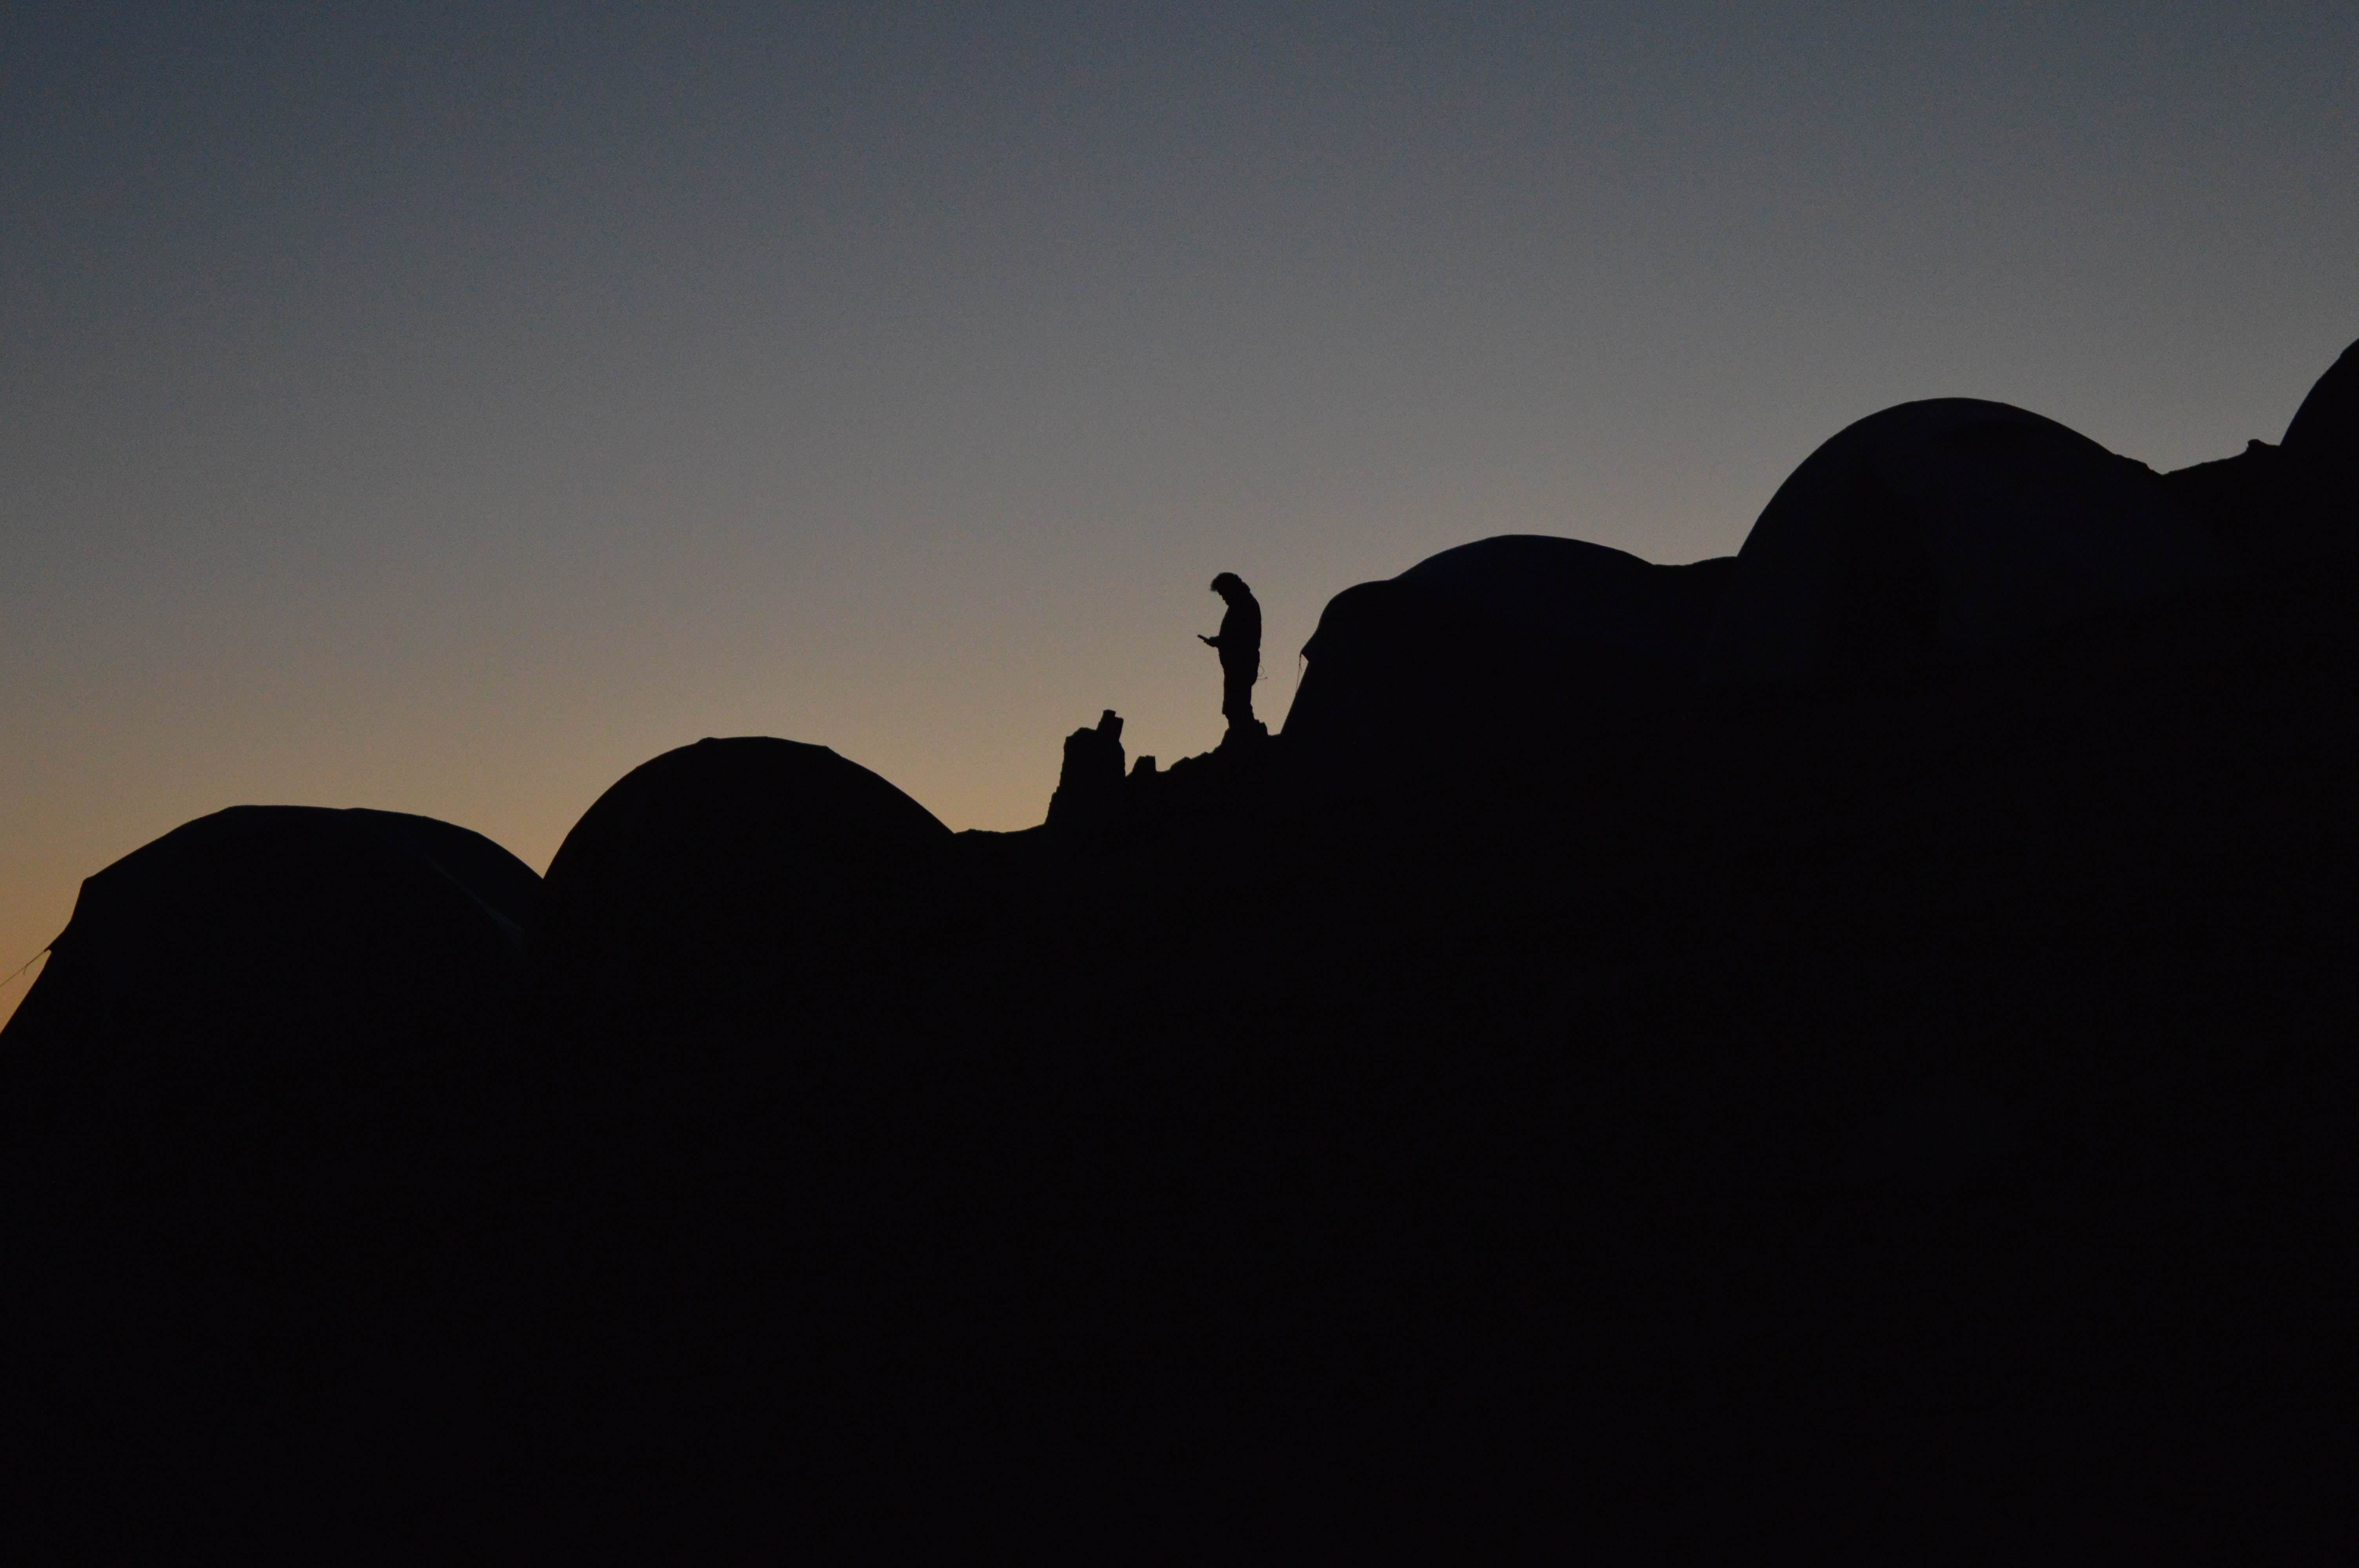 A silhouette of a person in a camping site on a slope at night